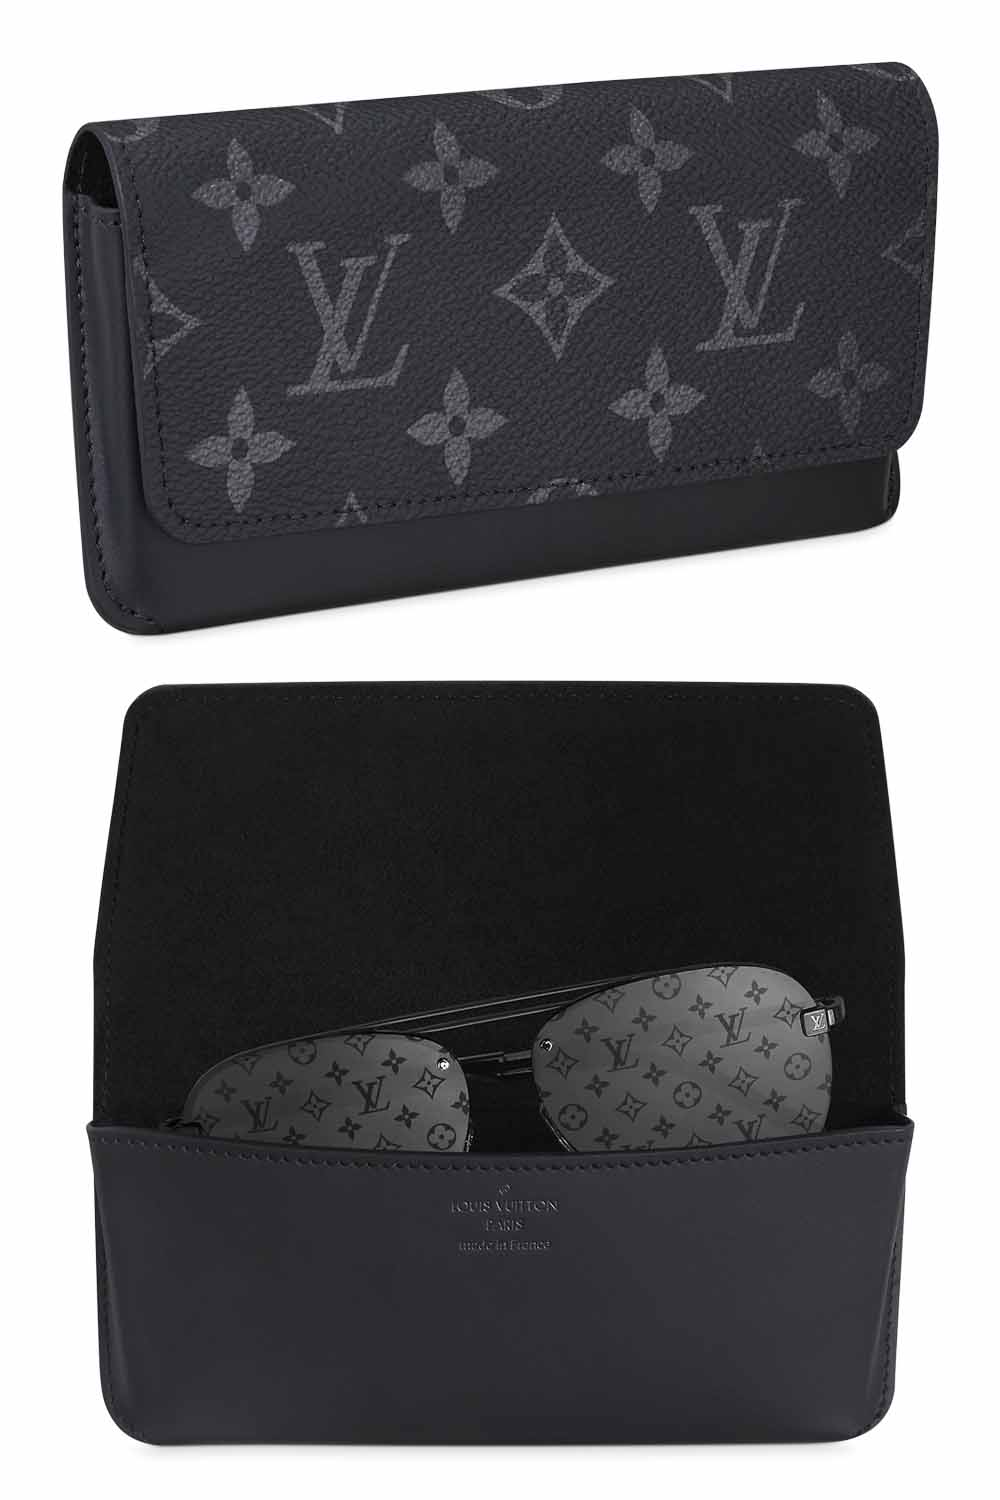 The-best-luxury-gifts-for-men-Louis-Vuitton-WOODY-GLASSES-CASE-eclipse-monogram-designer